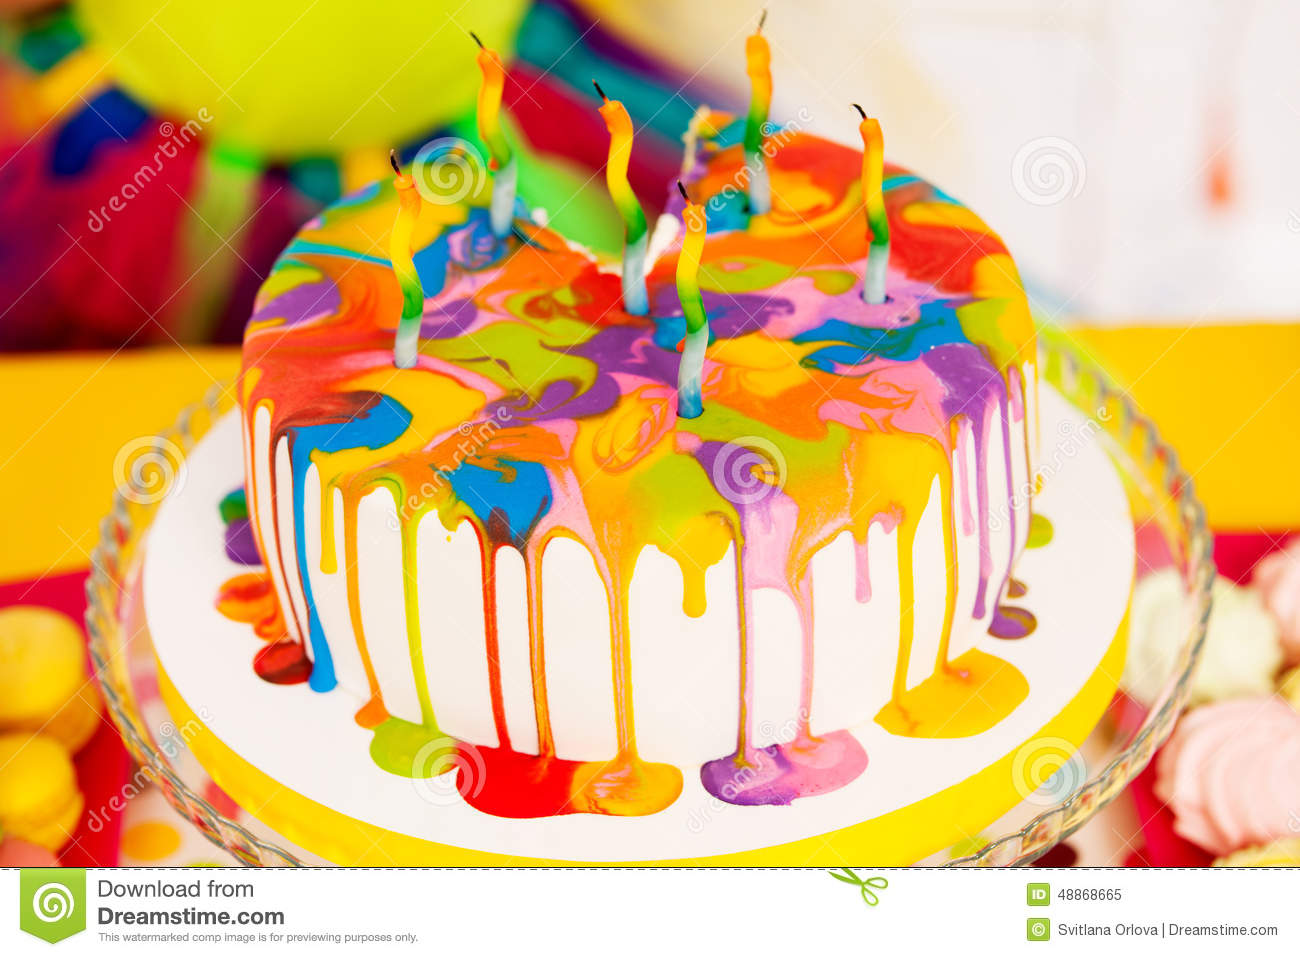 Swell Colorful Birthday Cake Stock Image Image Of Decoration 48868665 Funny Birthday Cards Online Fluifree Goldxyz